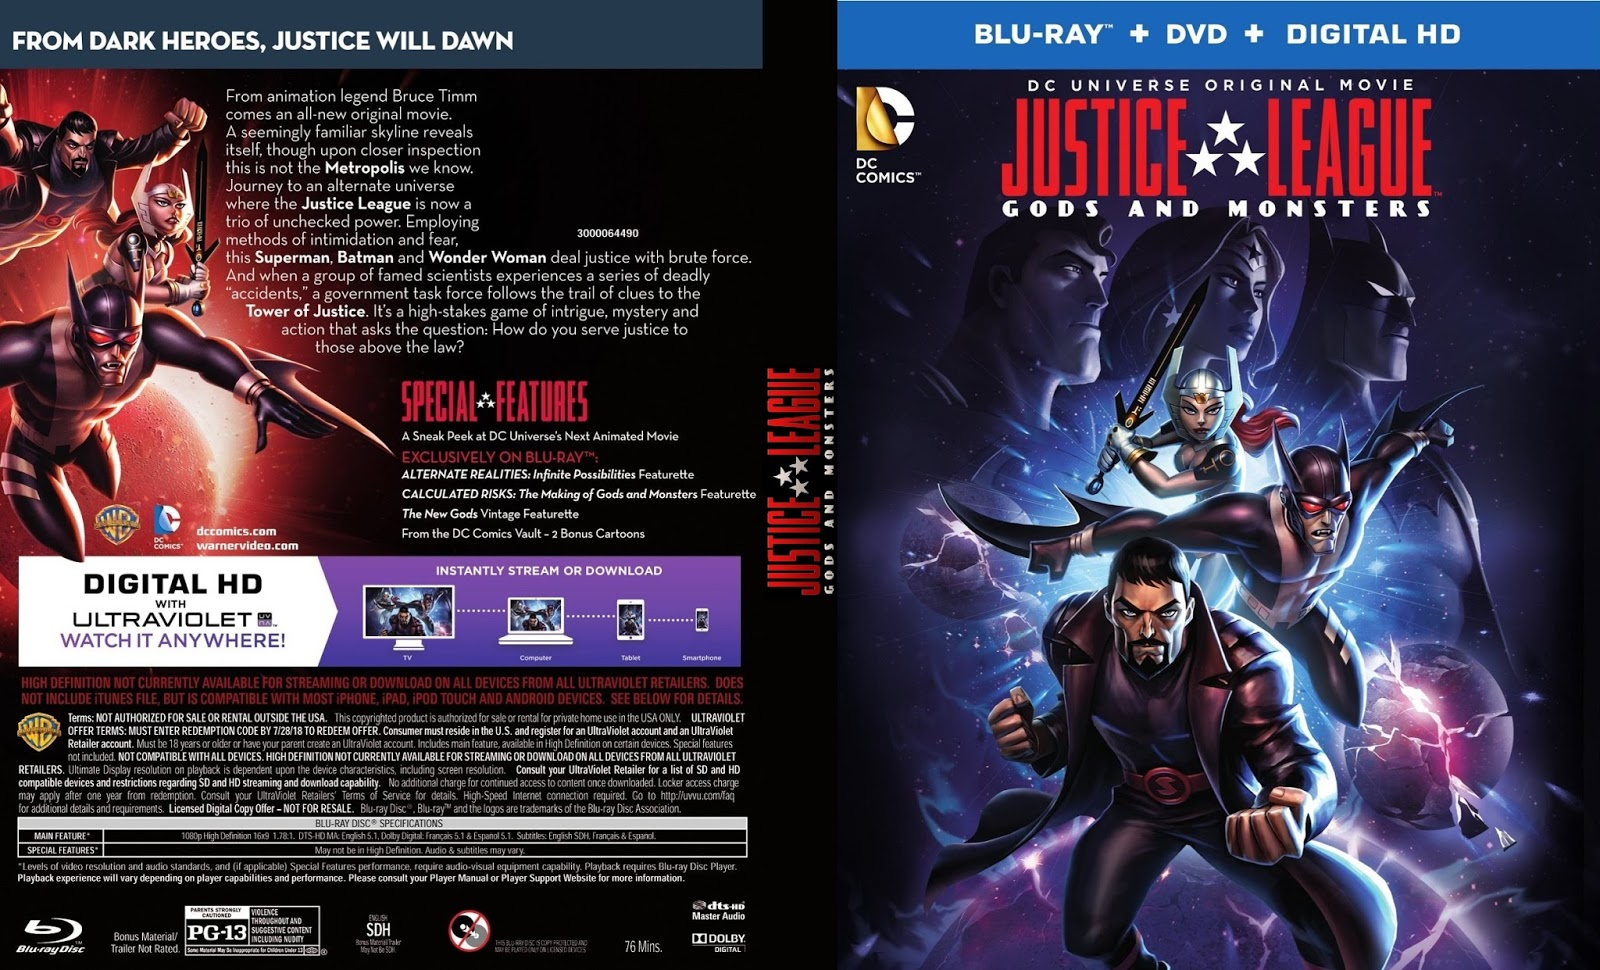 Justice League Gods and Monsters Bluray